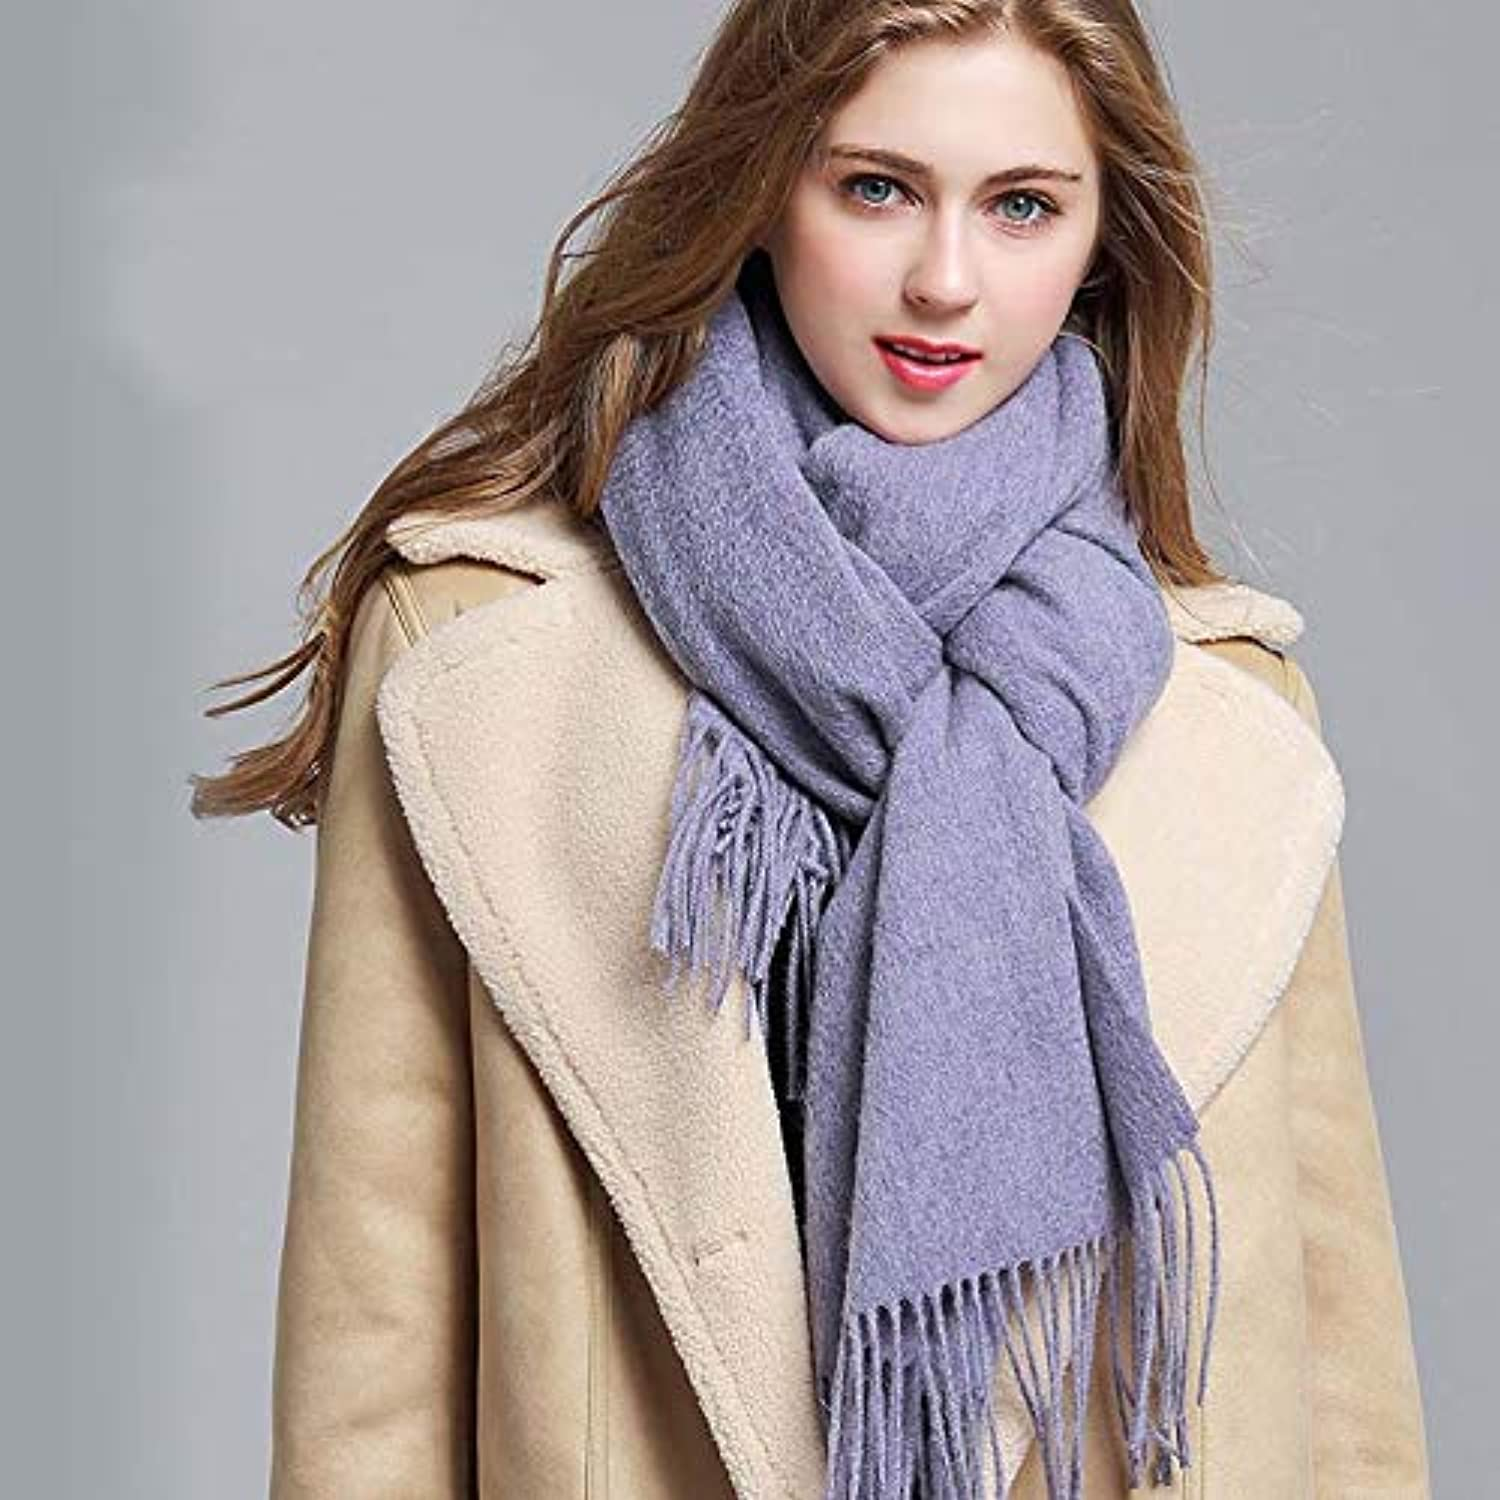 100% Pure Cashmere Solid color Scarf Wrap,Thick Solid Colour Design Cotton Blend Shawl Scarf,Cashmere Scarf Blanket Large Soft Pashmina Shawl Wrap for Winter Extra Large(70 X120 ), 8